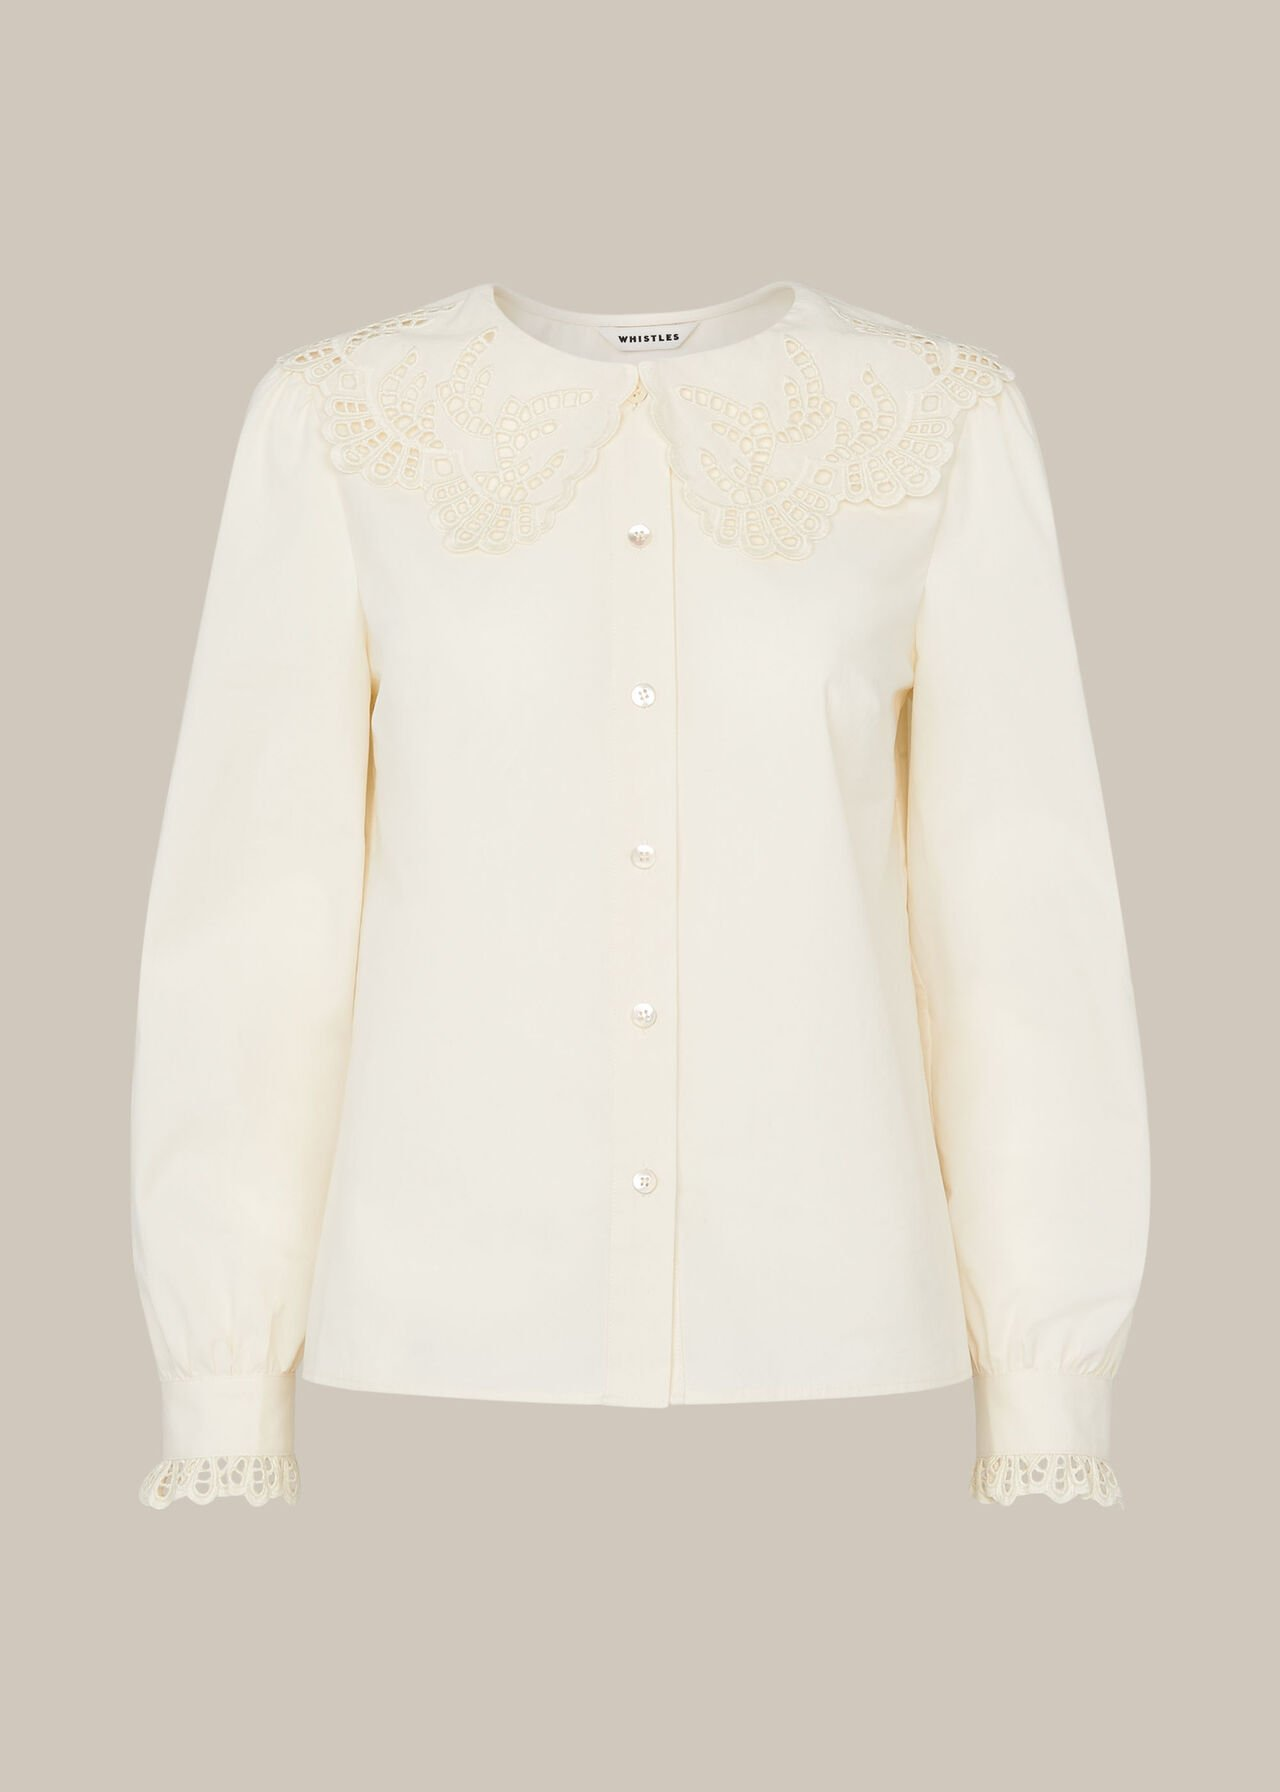 Lace Collared Cotton Blouse